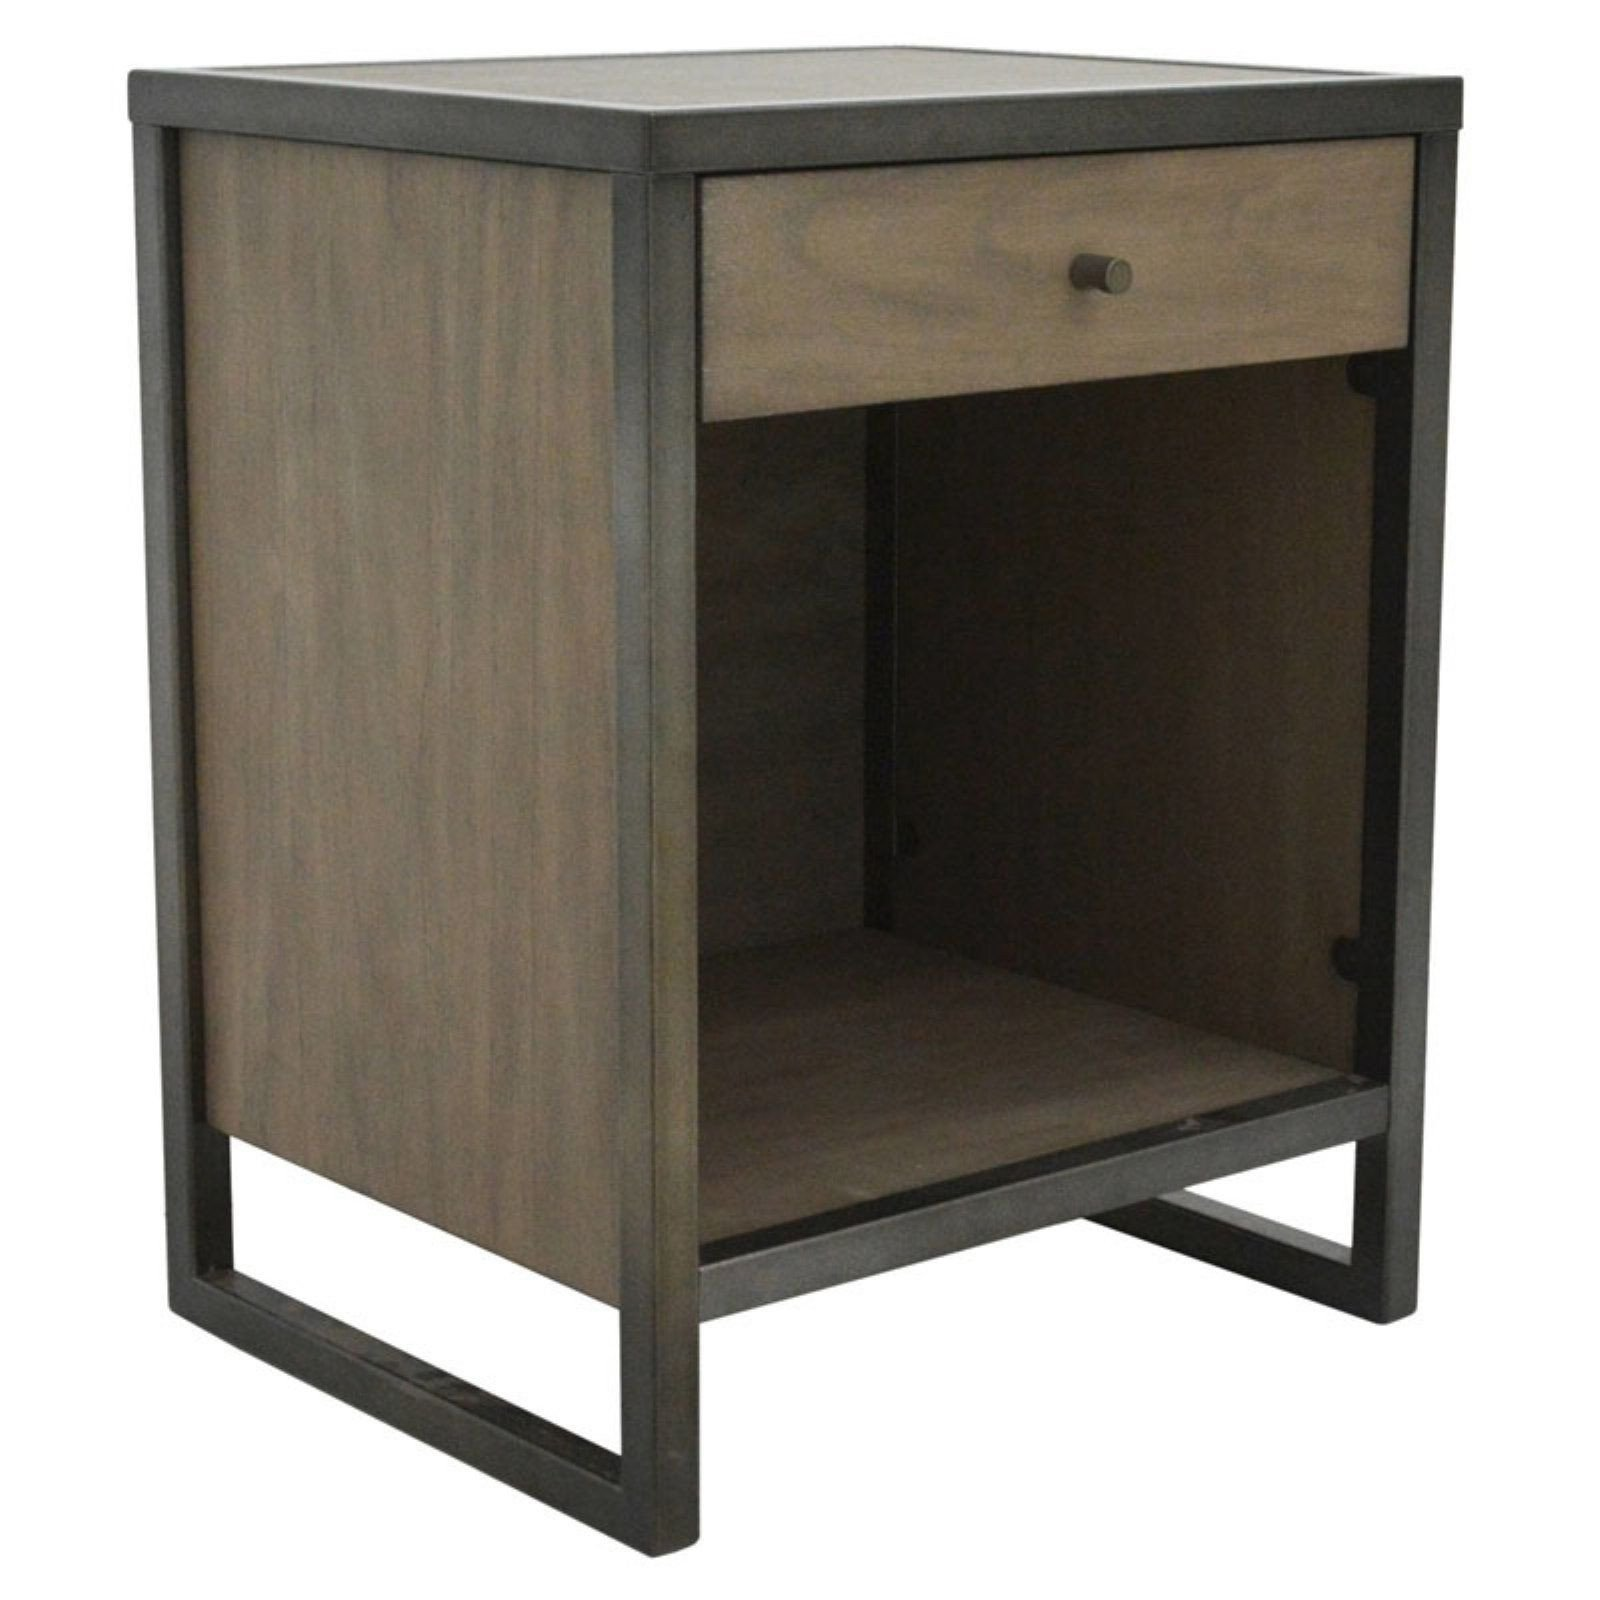 End Tables for Bedroom Lovely 222 Fifth Mason 1 Drawer Accent End Table